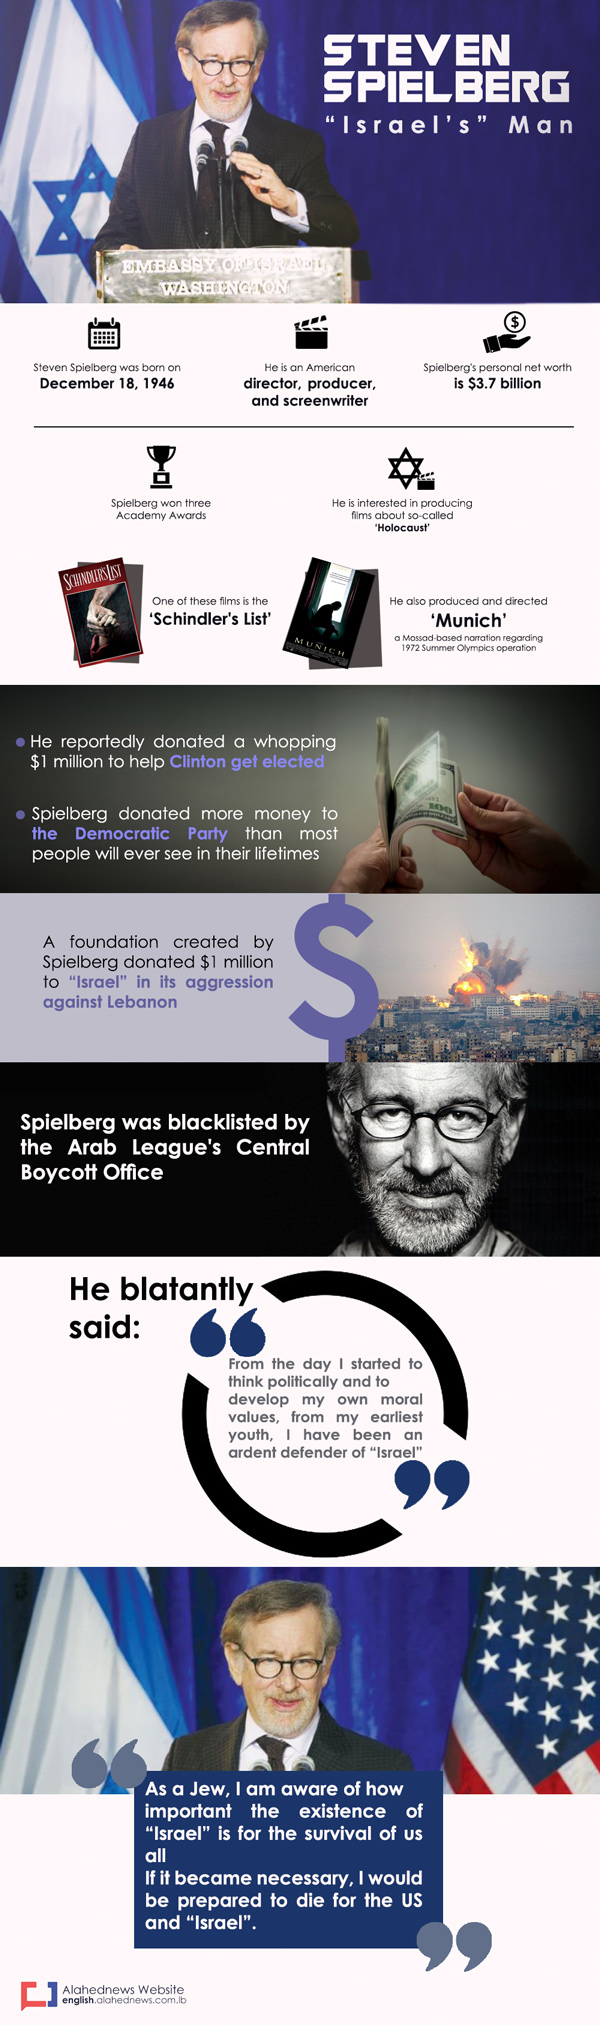 Infographic on Steven Spielberg